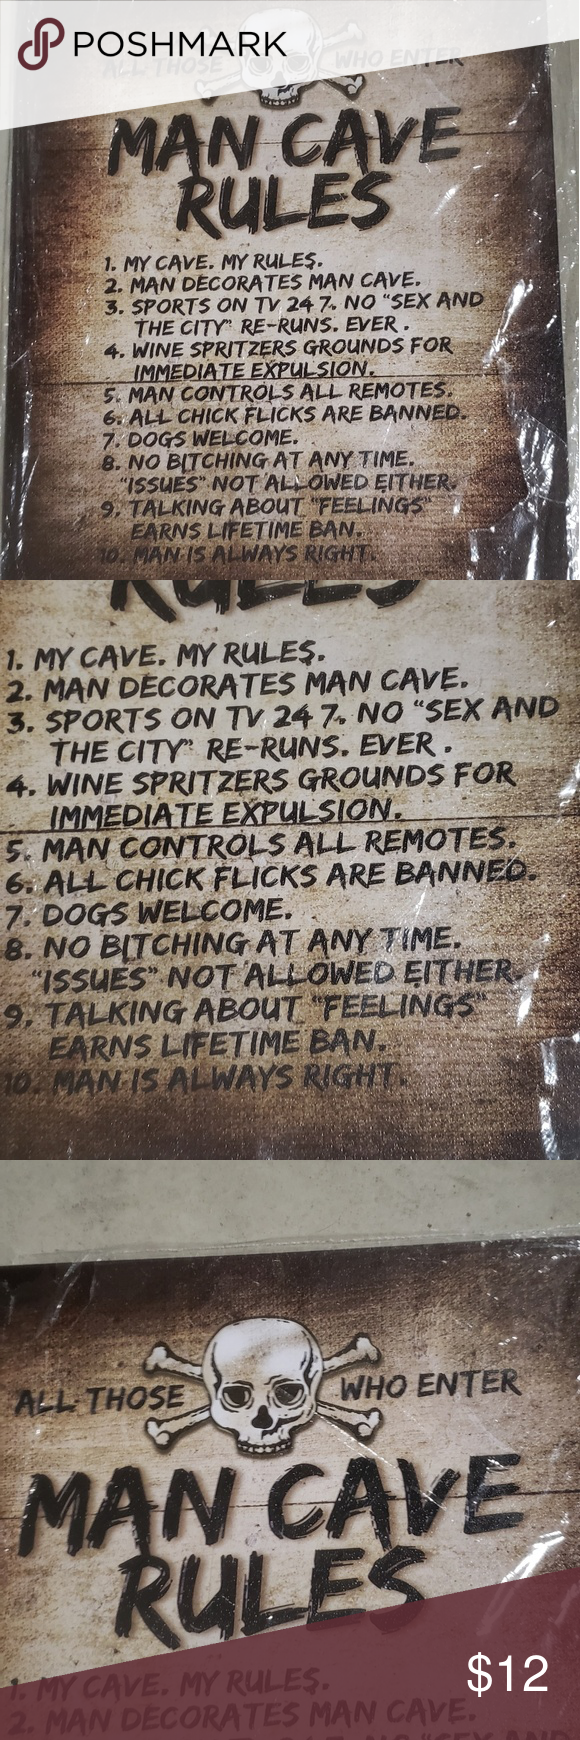 NEW MAN CAVE RULES TIN SIGN Great sign for your man cave